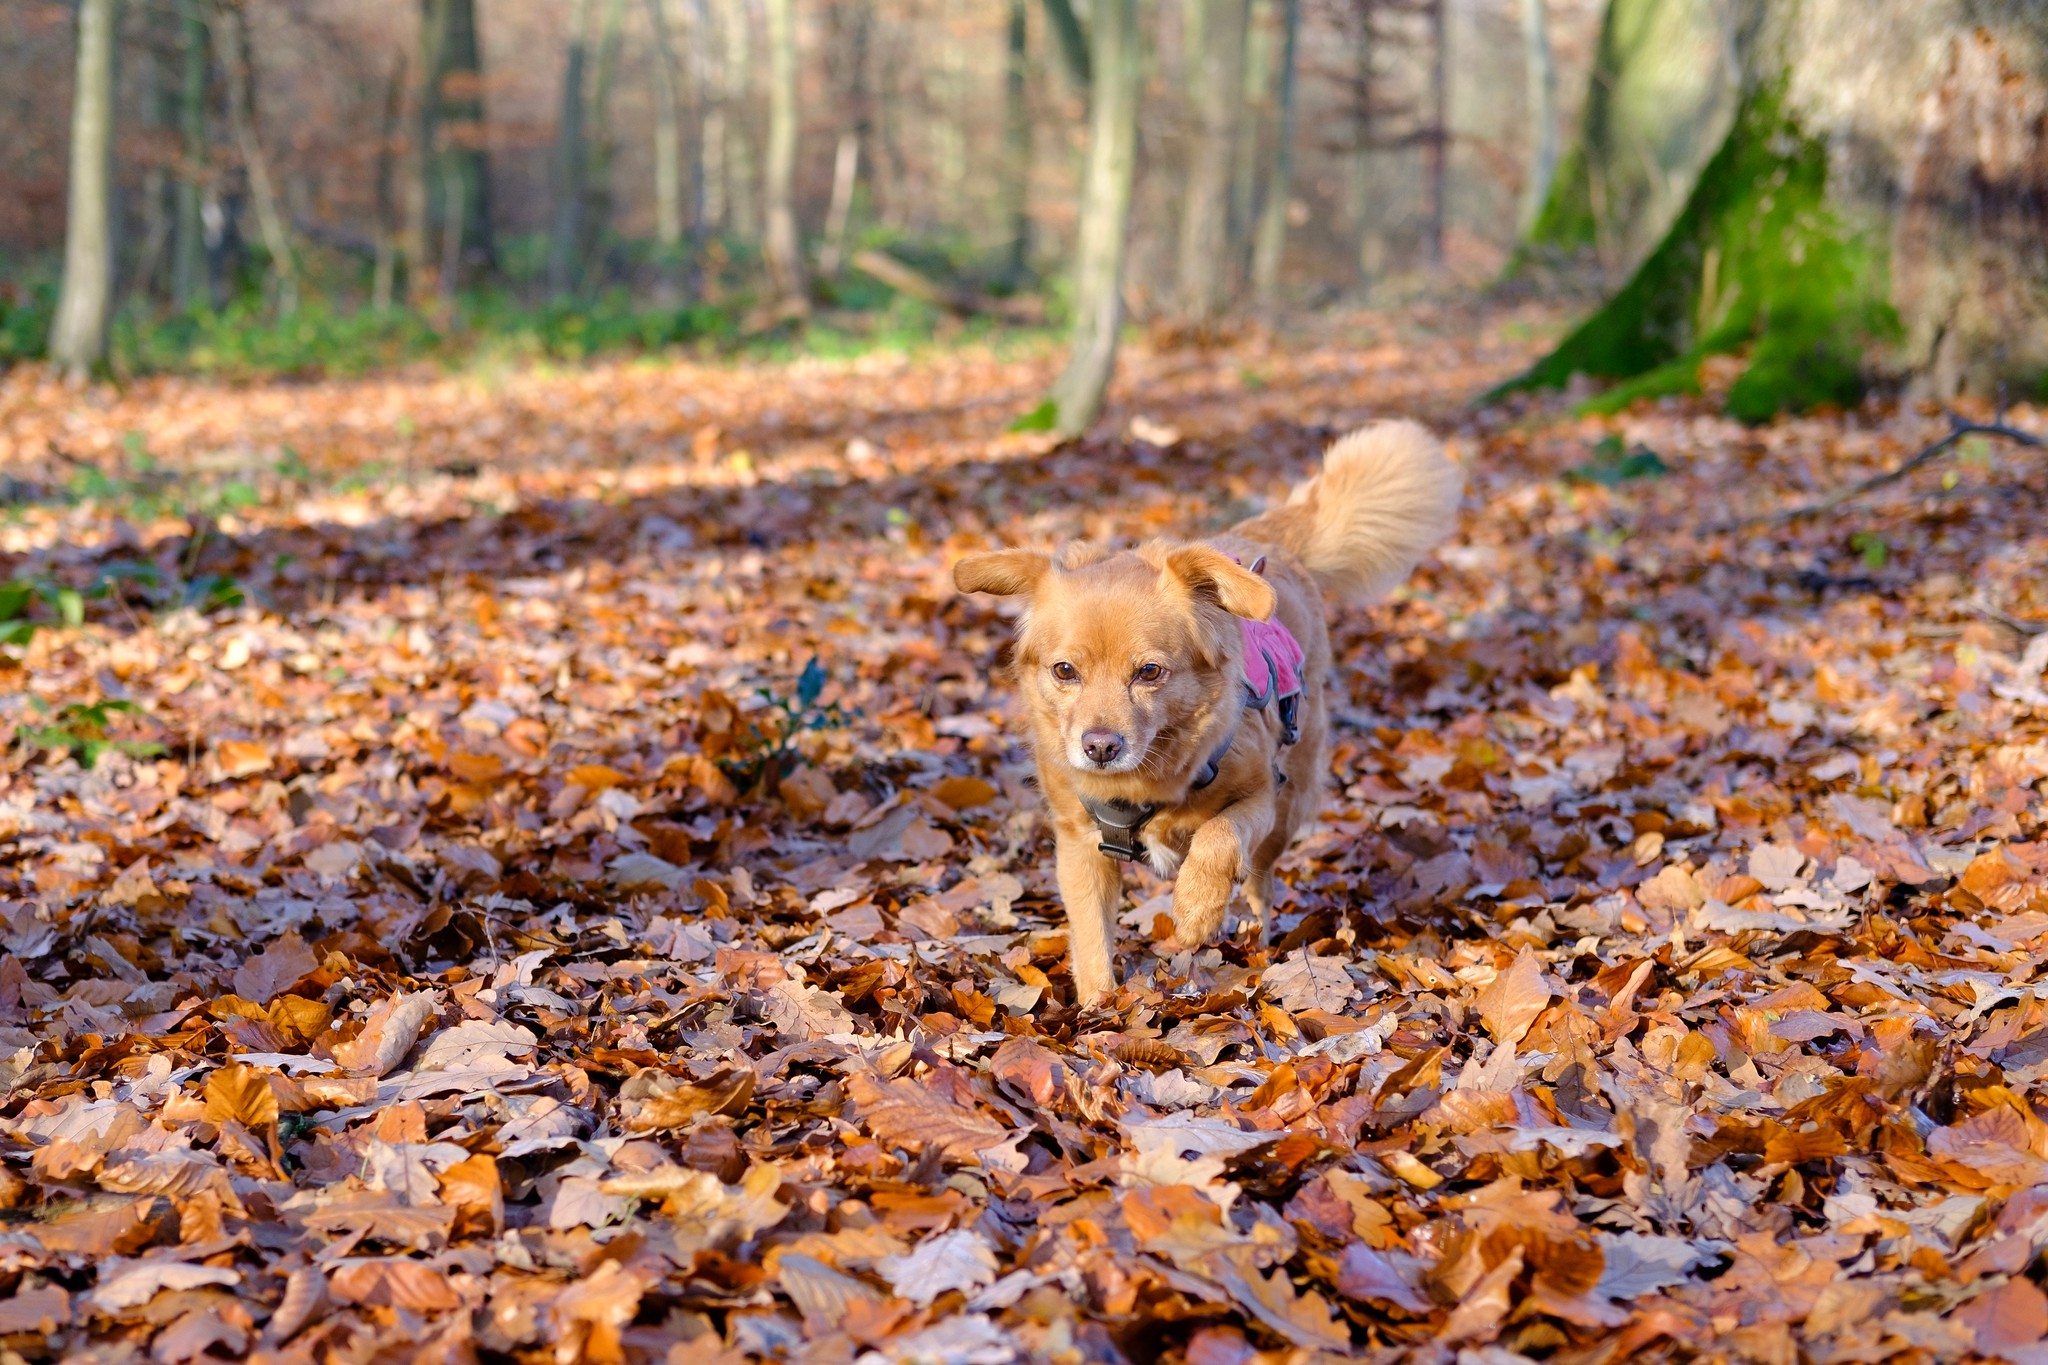 Mika running towards me through a forest clearing covered in leaves